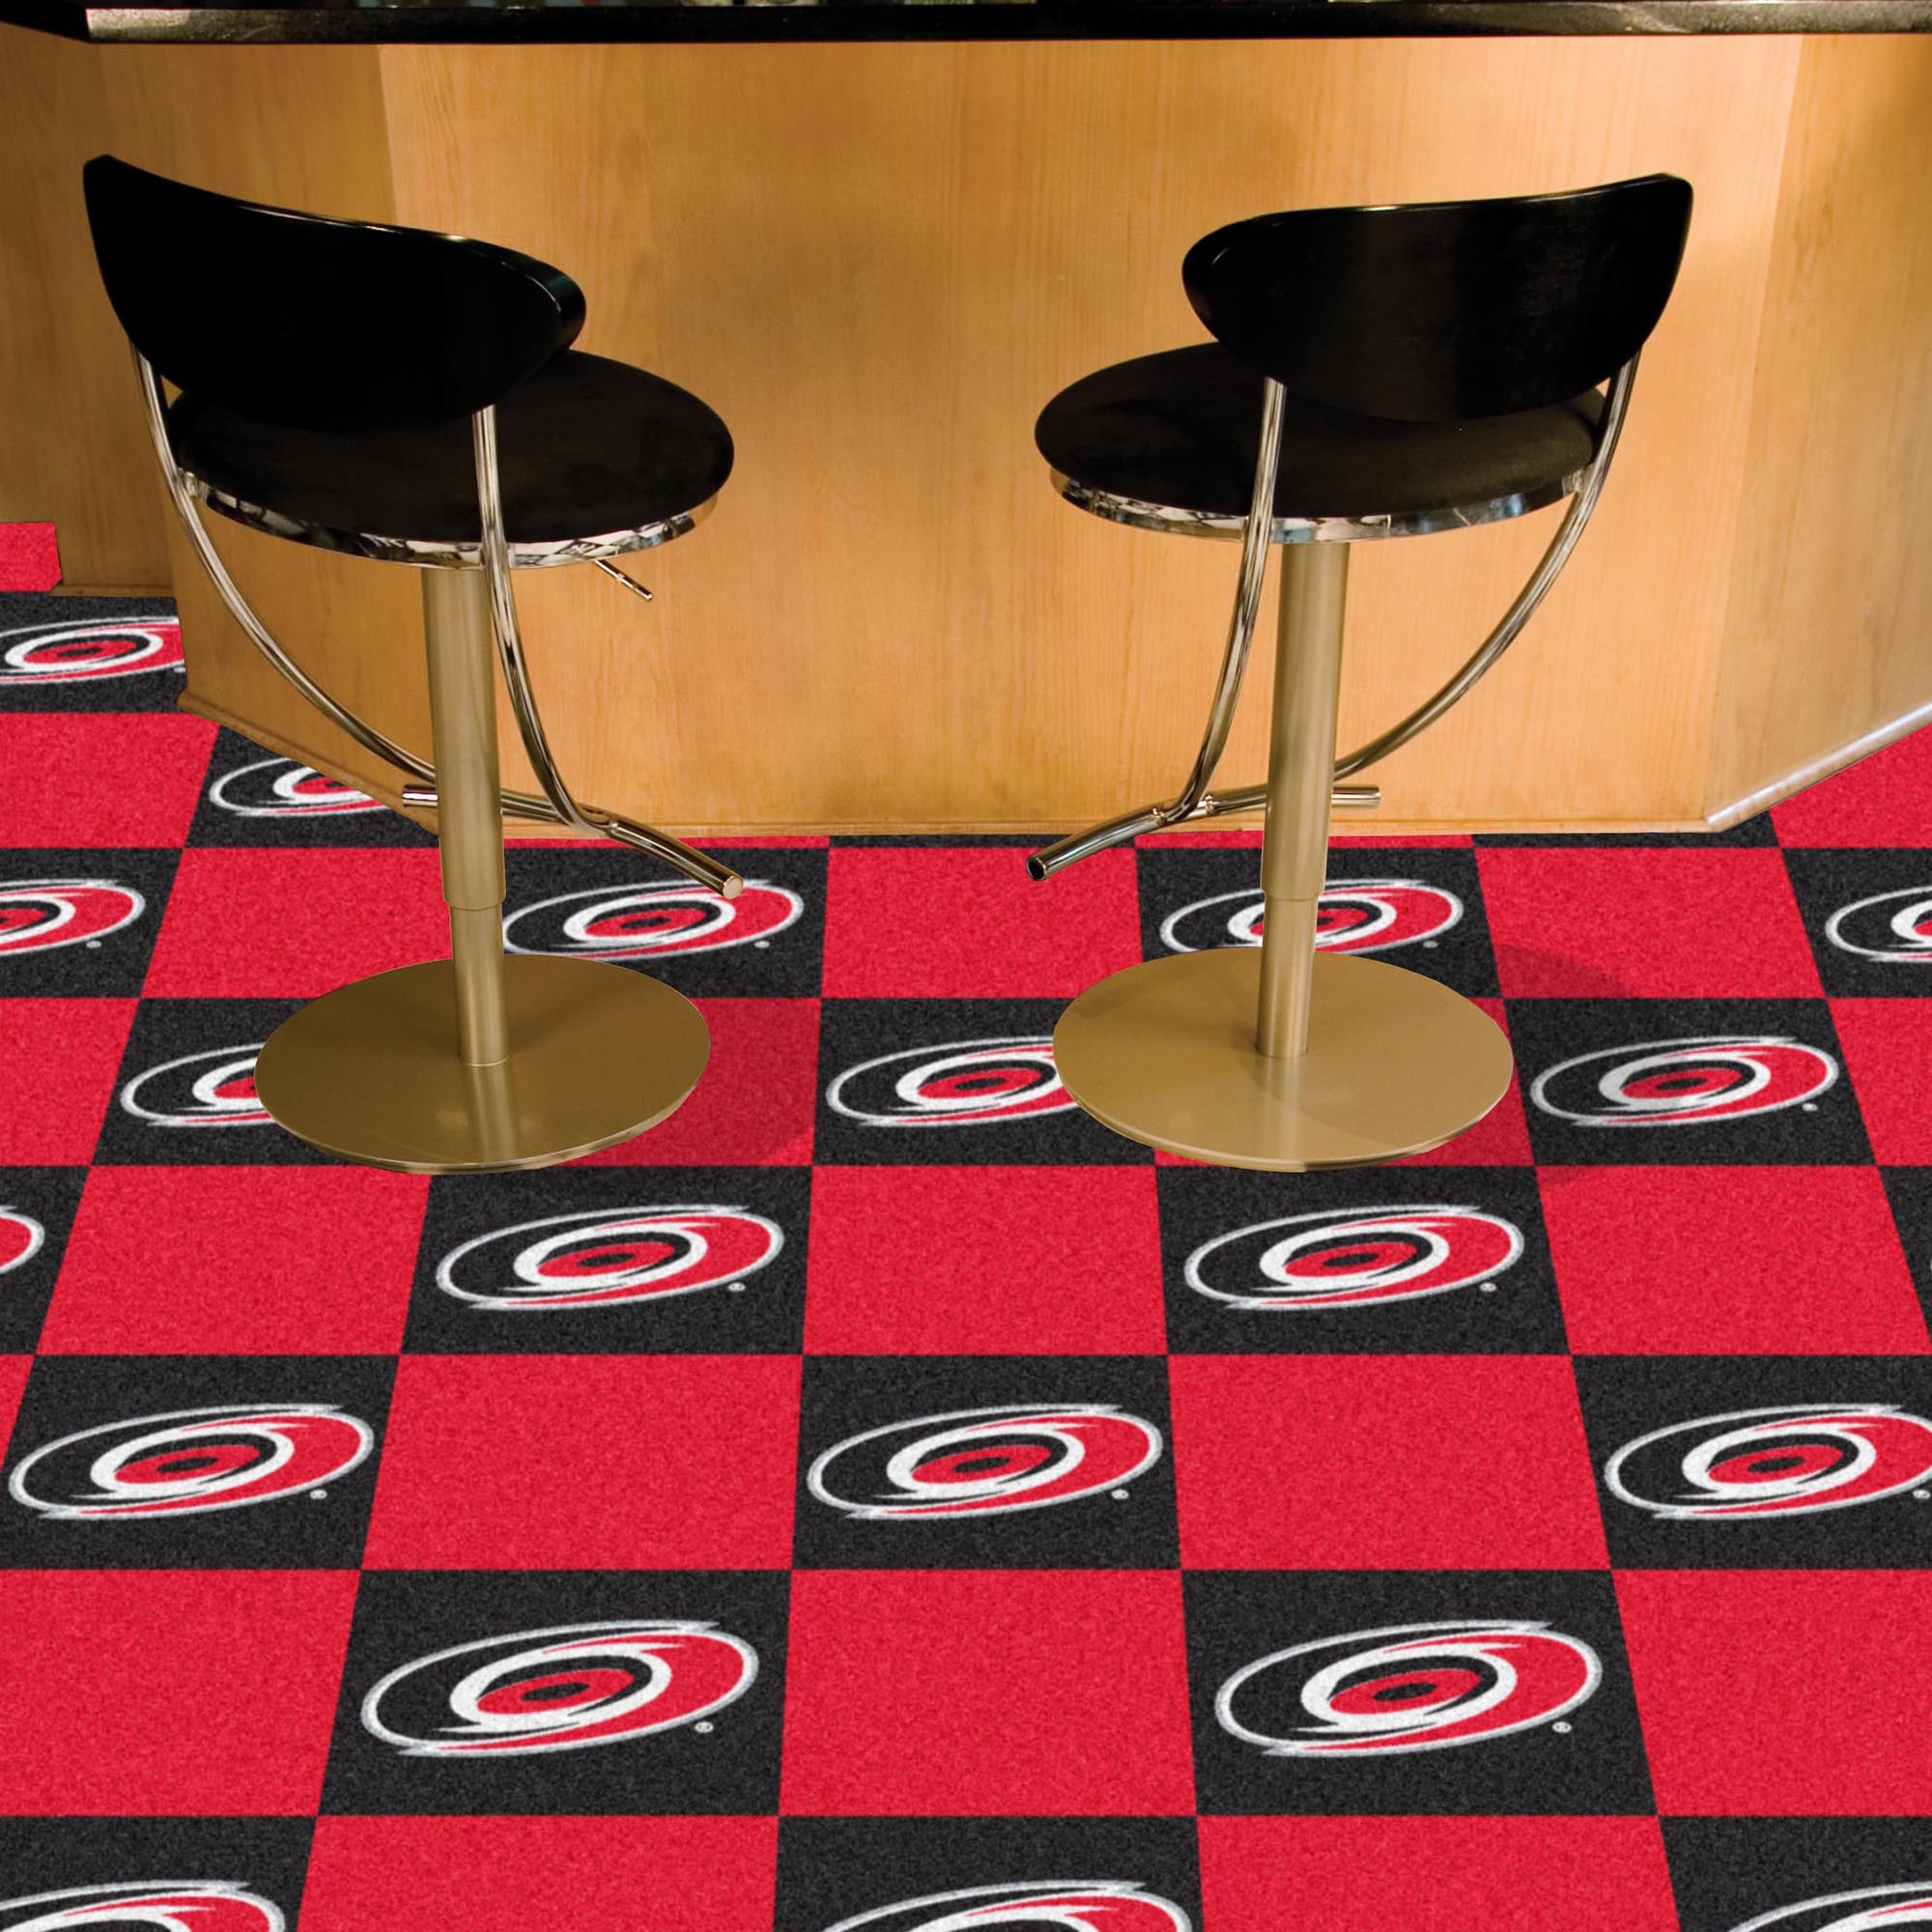 Carolina Hurricanes Carpet Tiles 18x18 in.